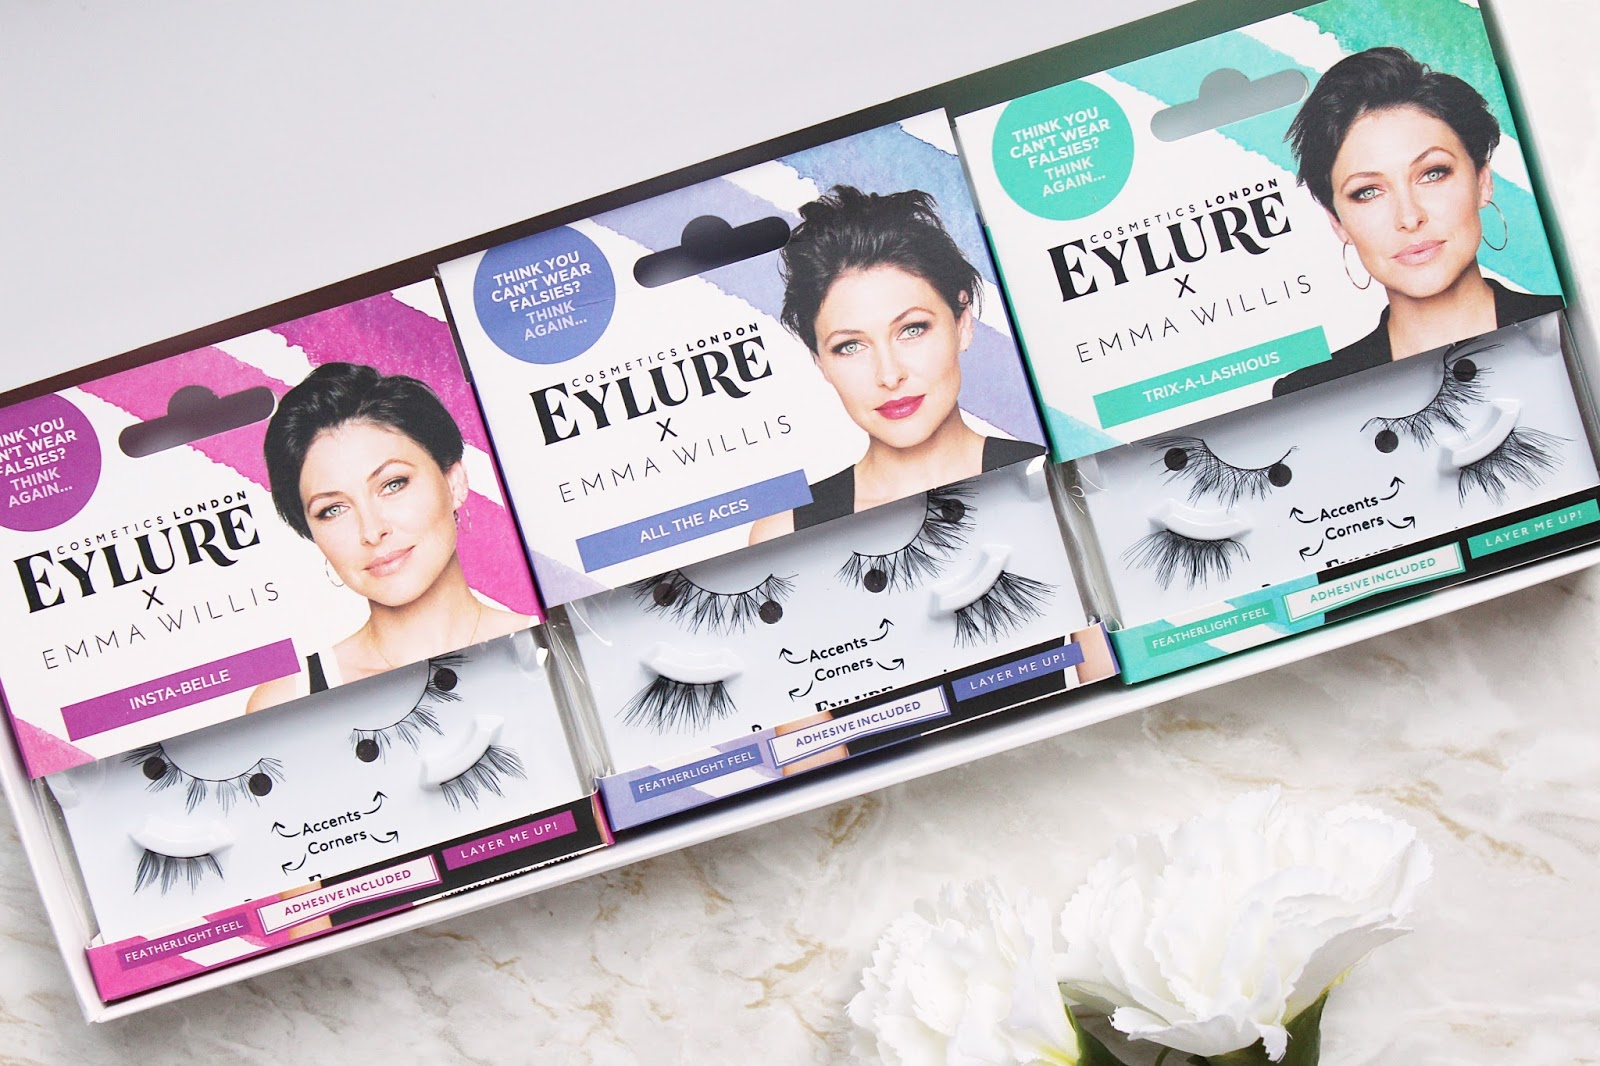 Eylure x Emma Willis Lash Collection